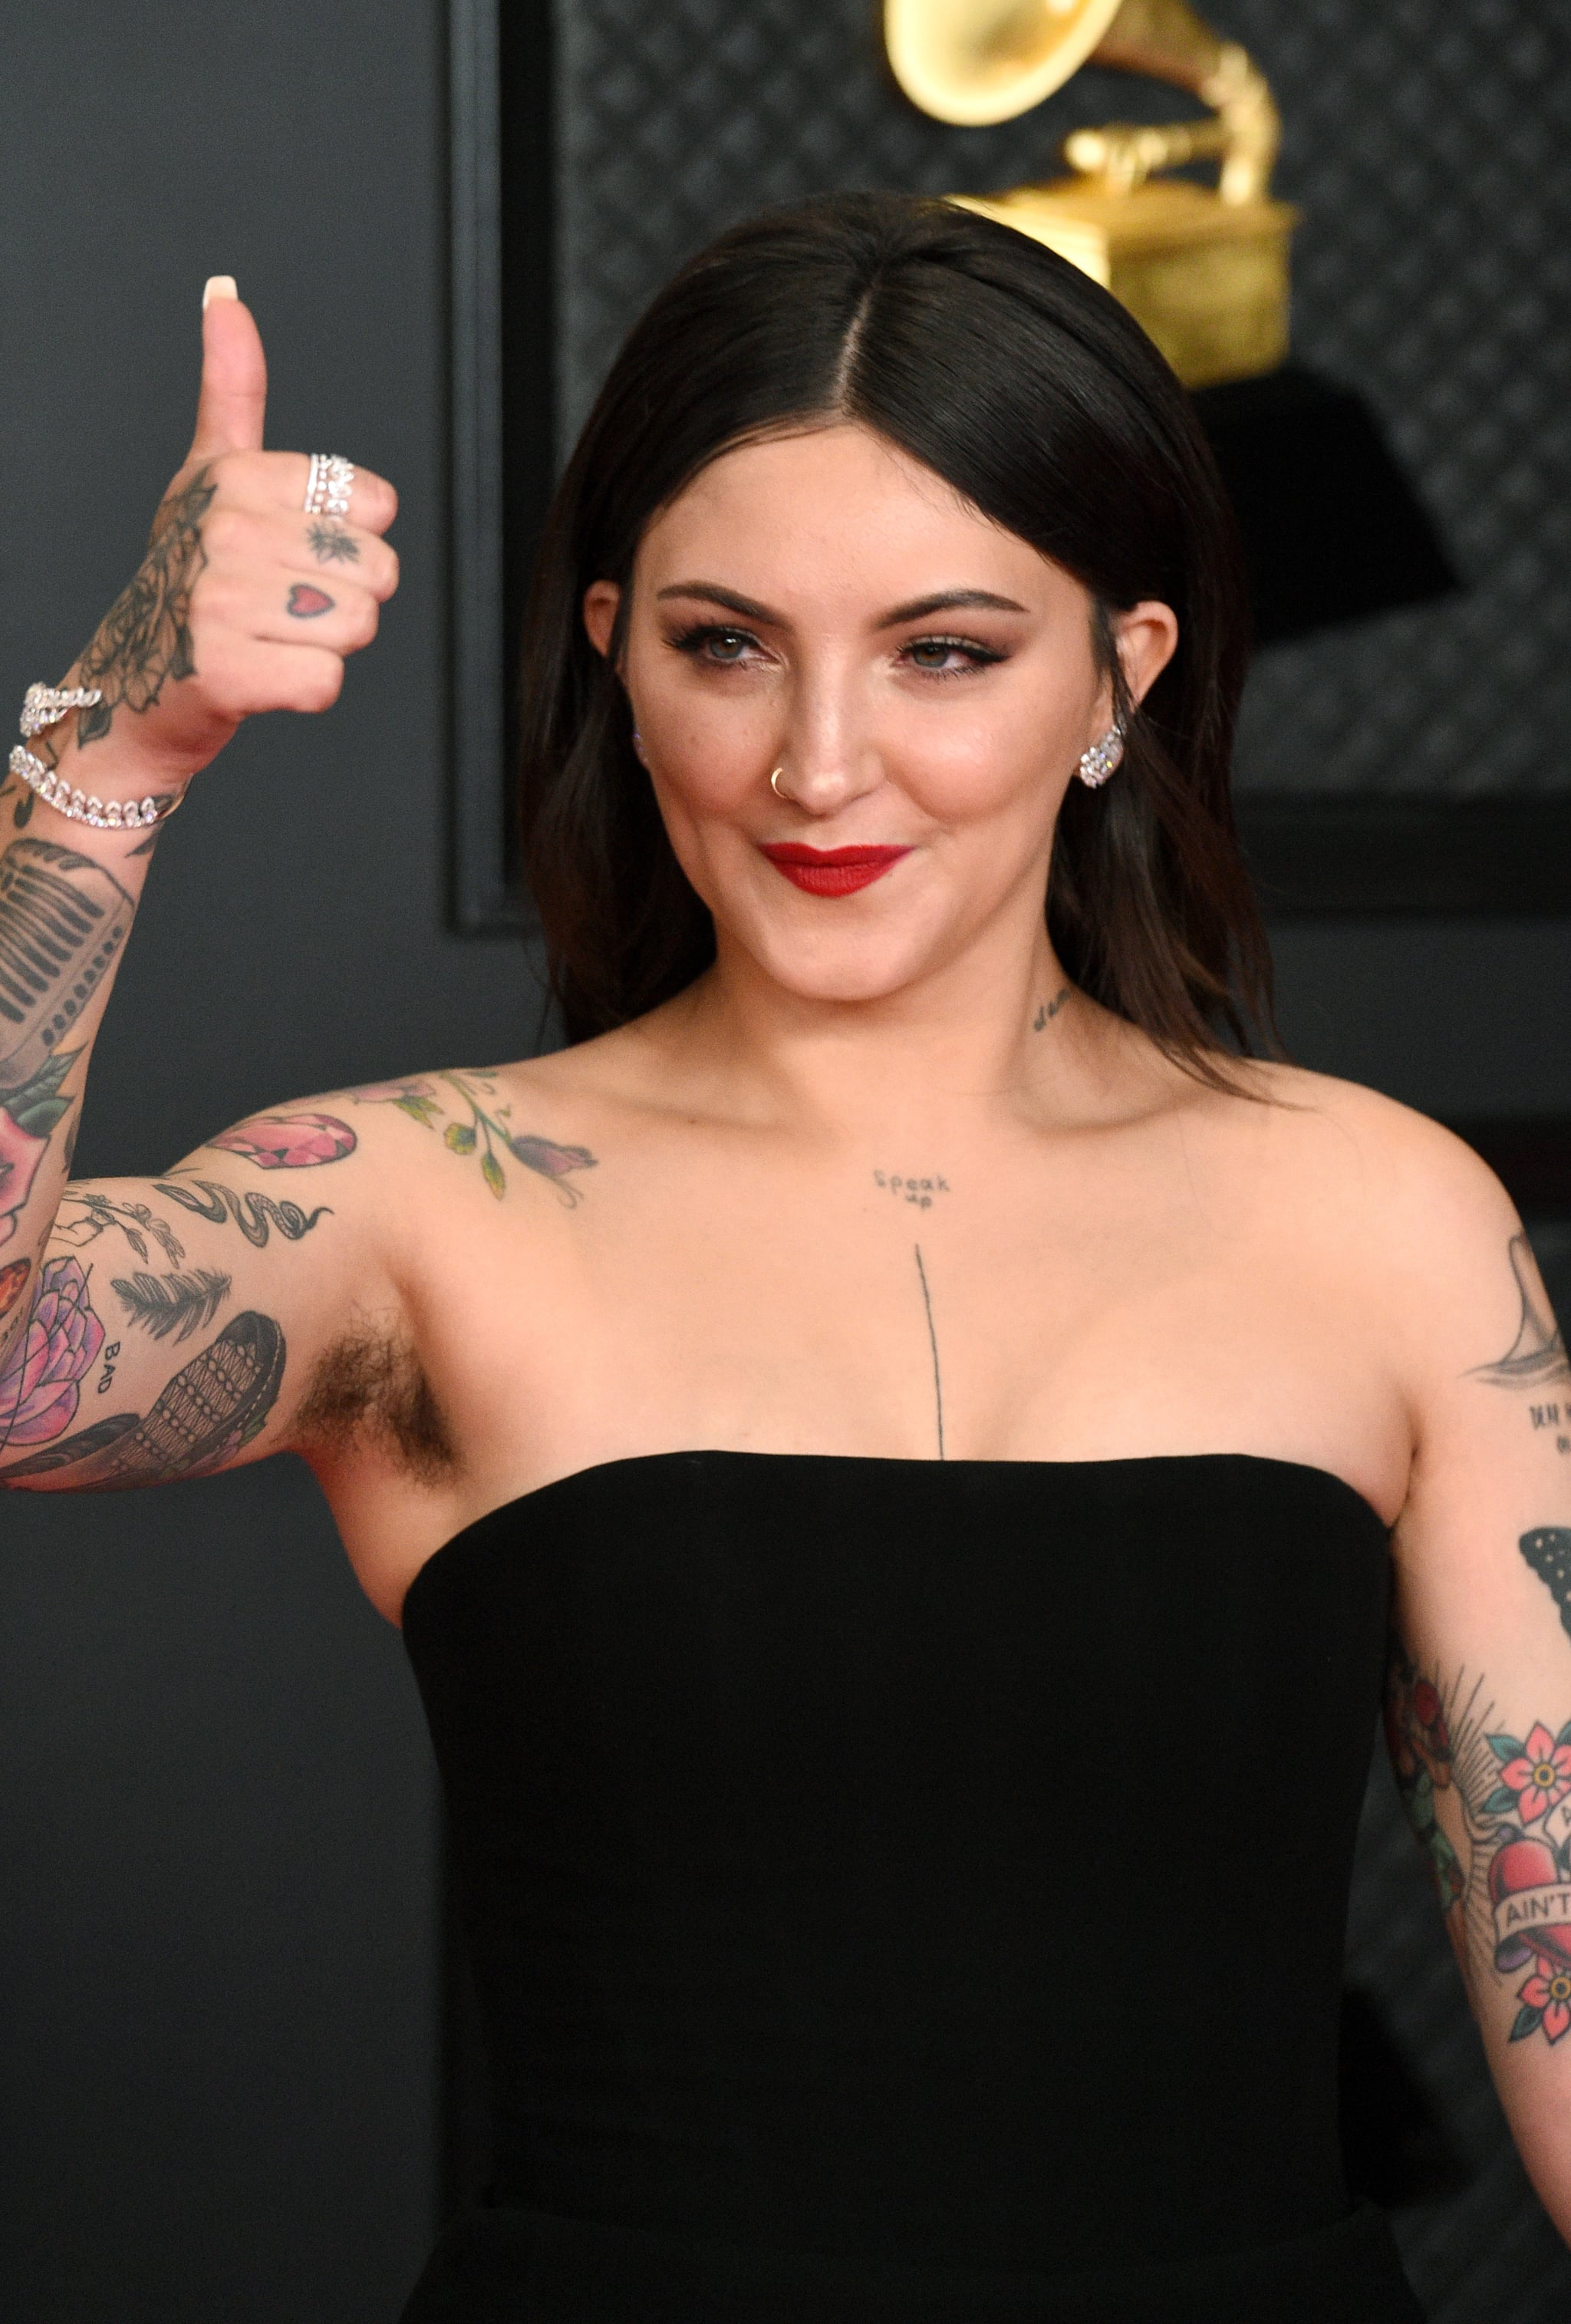 LOS ANGELES, CALIFORNIA - MARCH 14: Julia Michaels attends the 63rd Annual GRAMMY Awards at Los Angeles Convention Center on March 14, 2021 in Los Angeles, California. (Photo by Kevin Mazur/Getty Images for The Recording Academy )